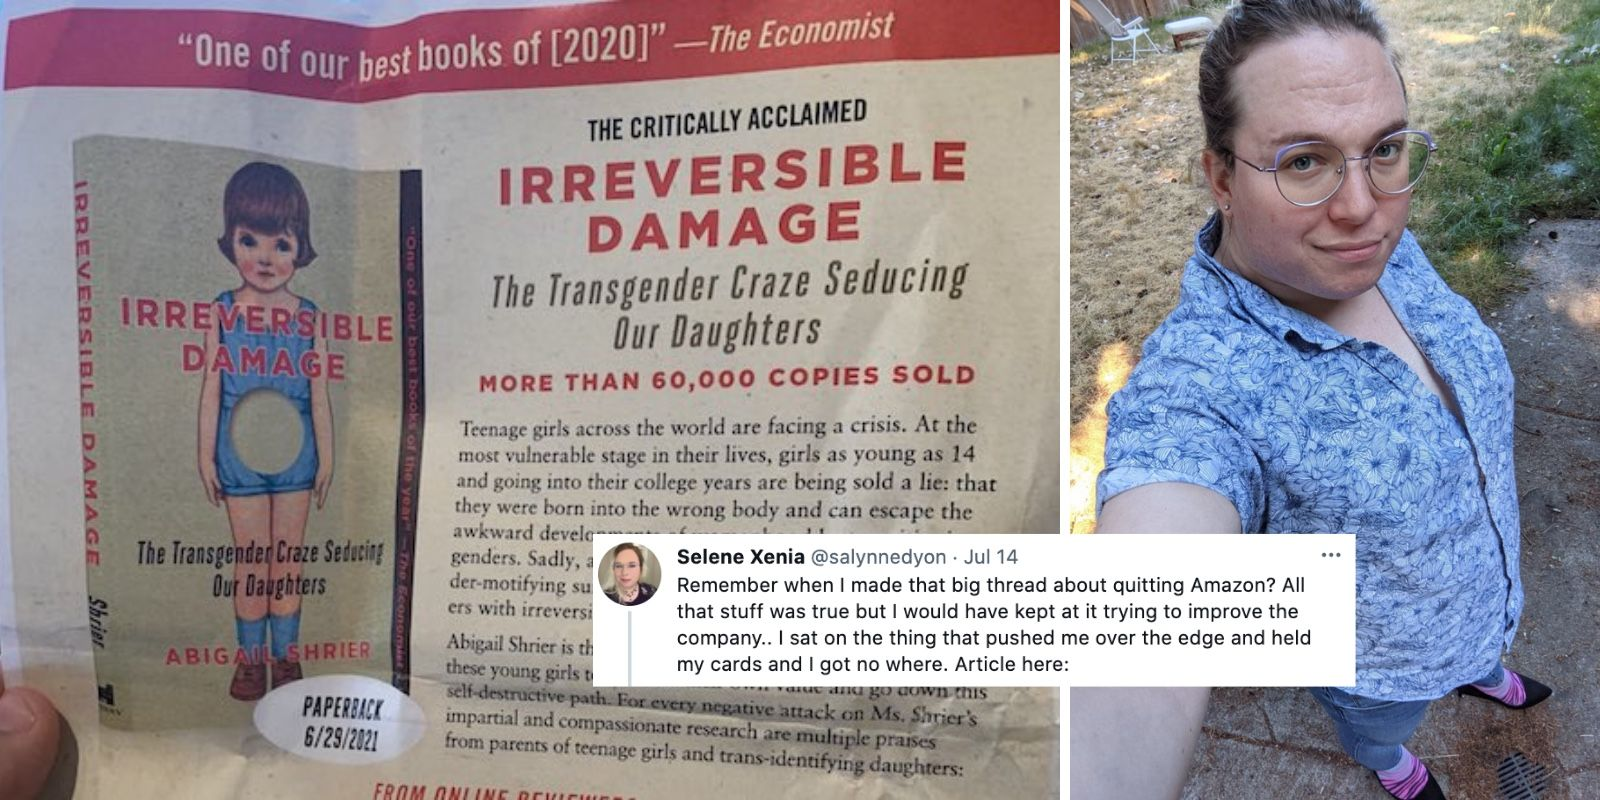 Amazon workers quit, booksellers apologize over book that seeks better mental health treatment for girls